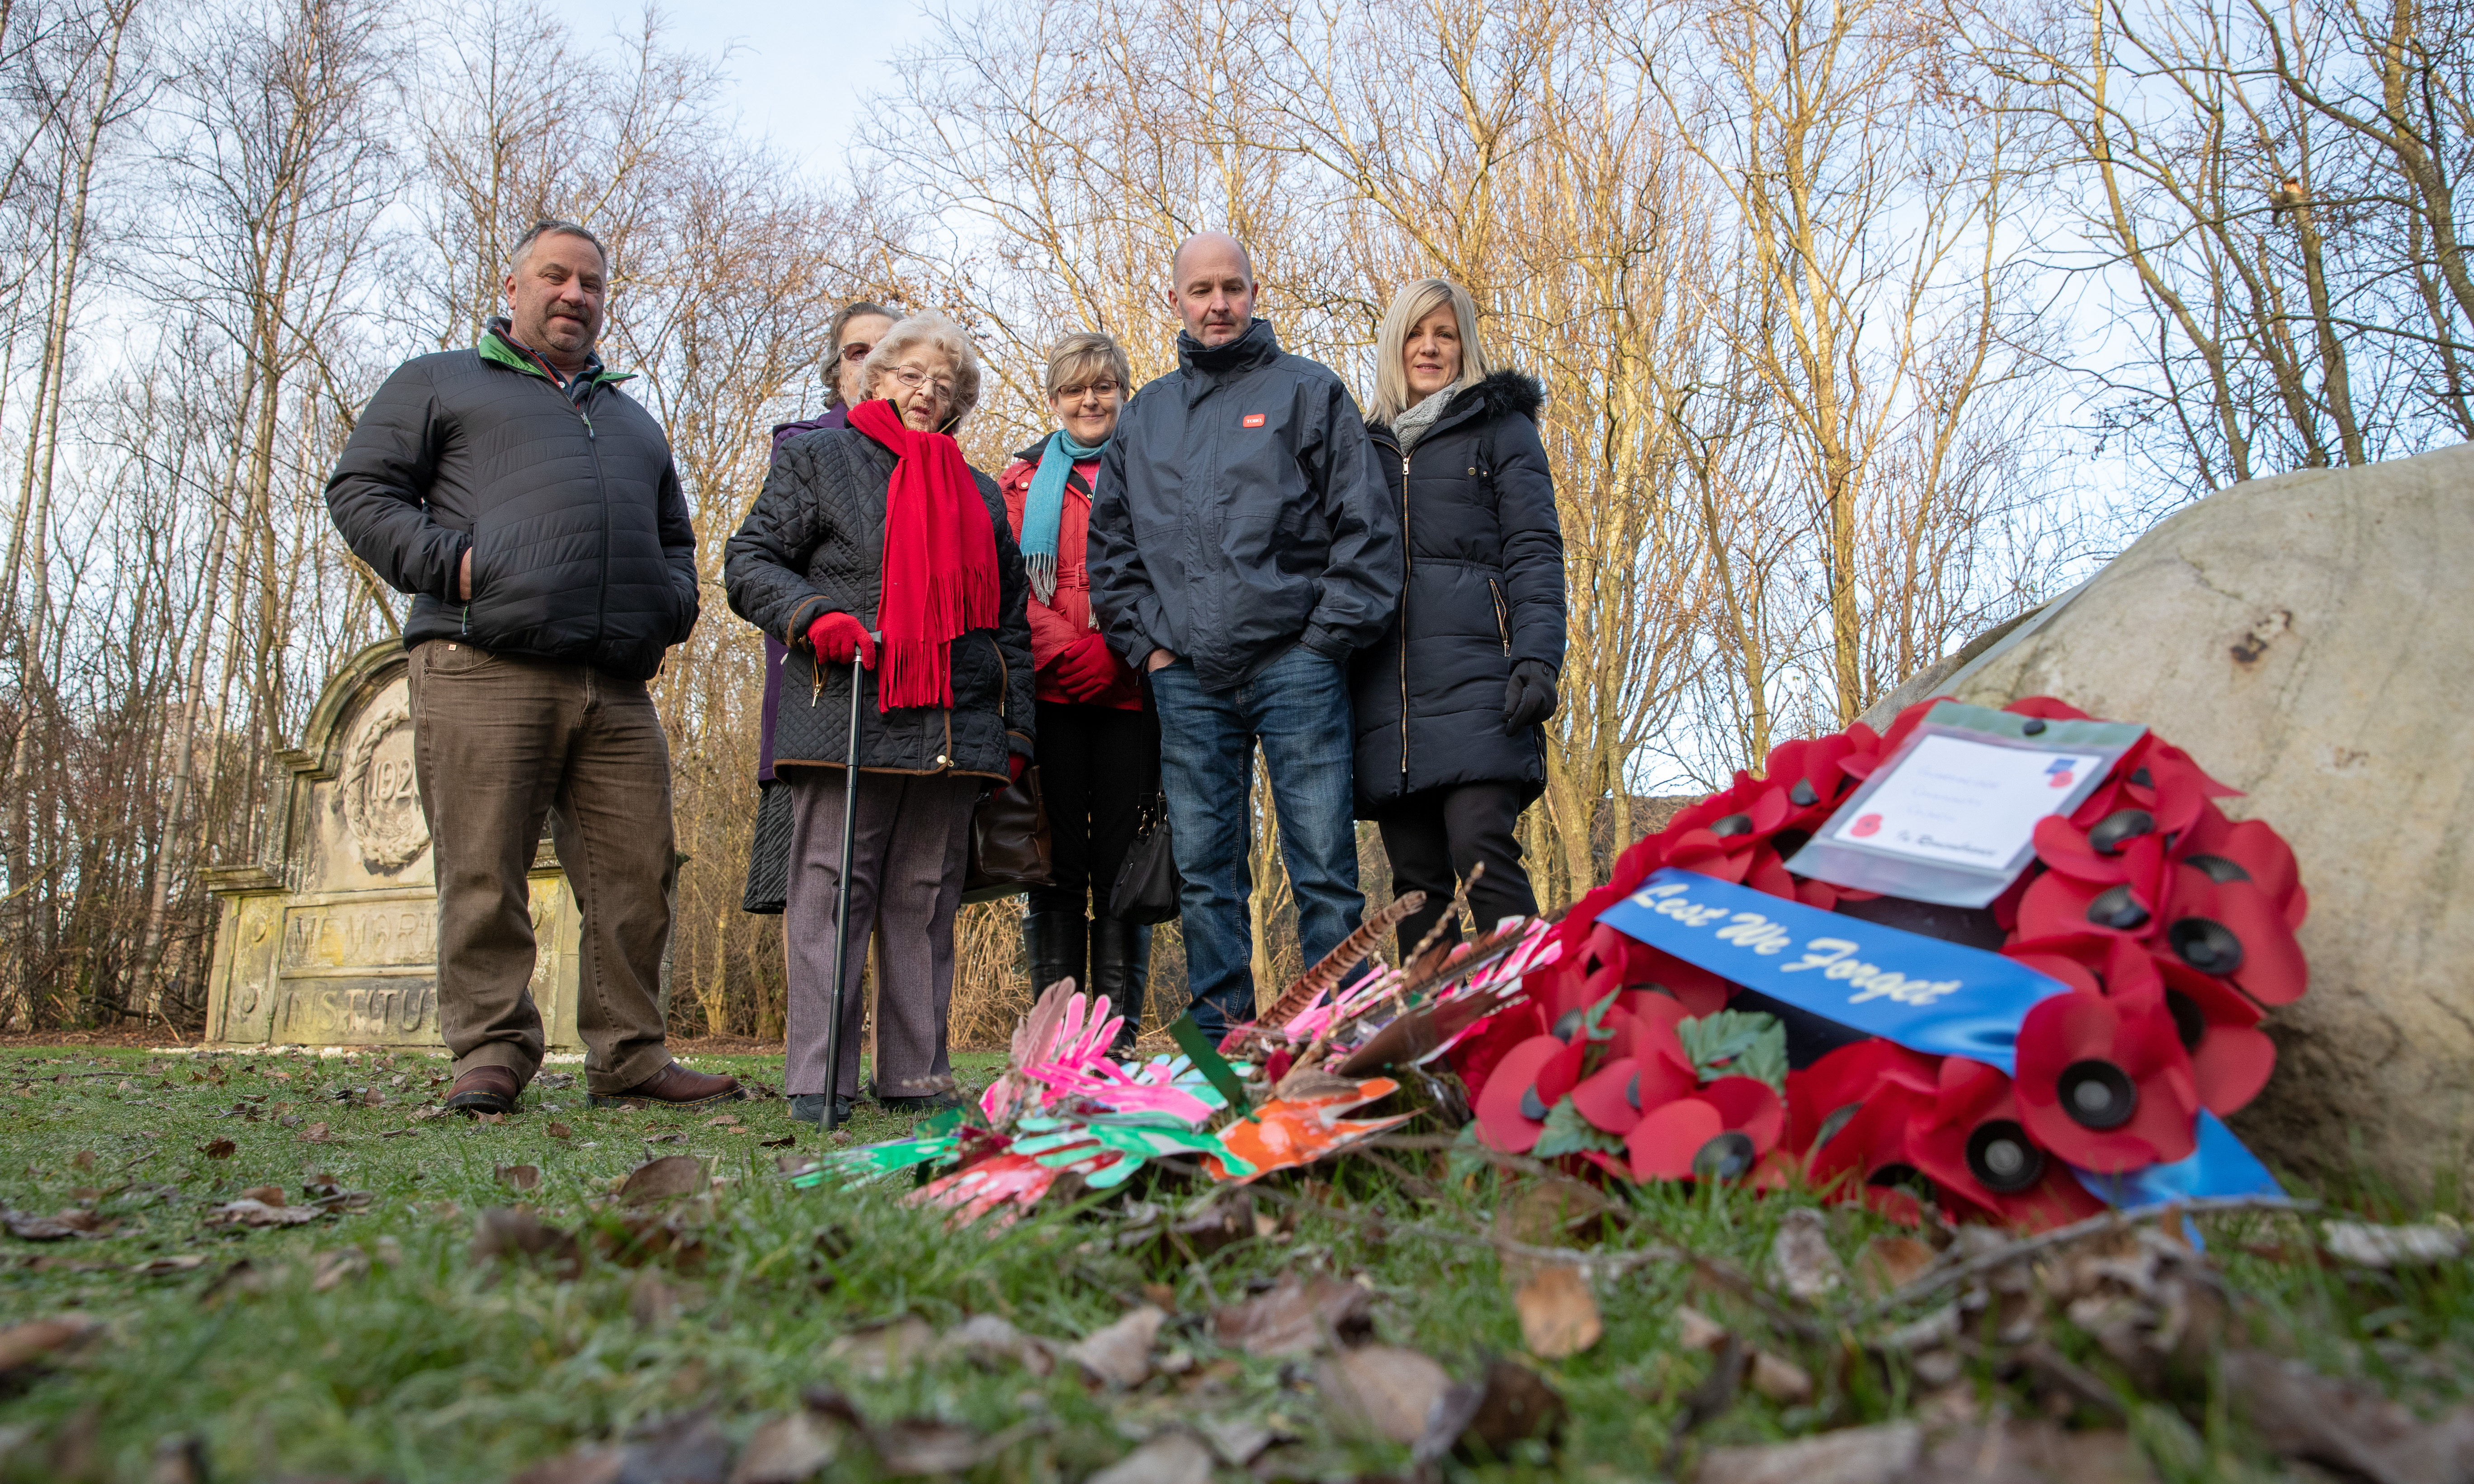 Members of the Finlay family gather to admire the memorial following a Service and rededication ceremony of stone in honour of Fife VC hero David Finlay.